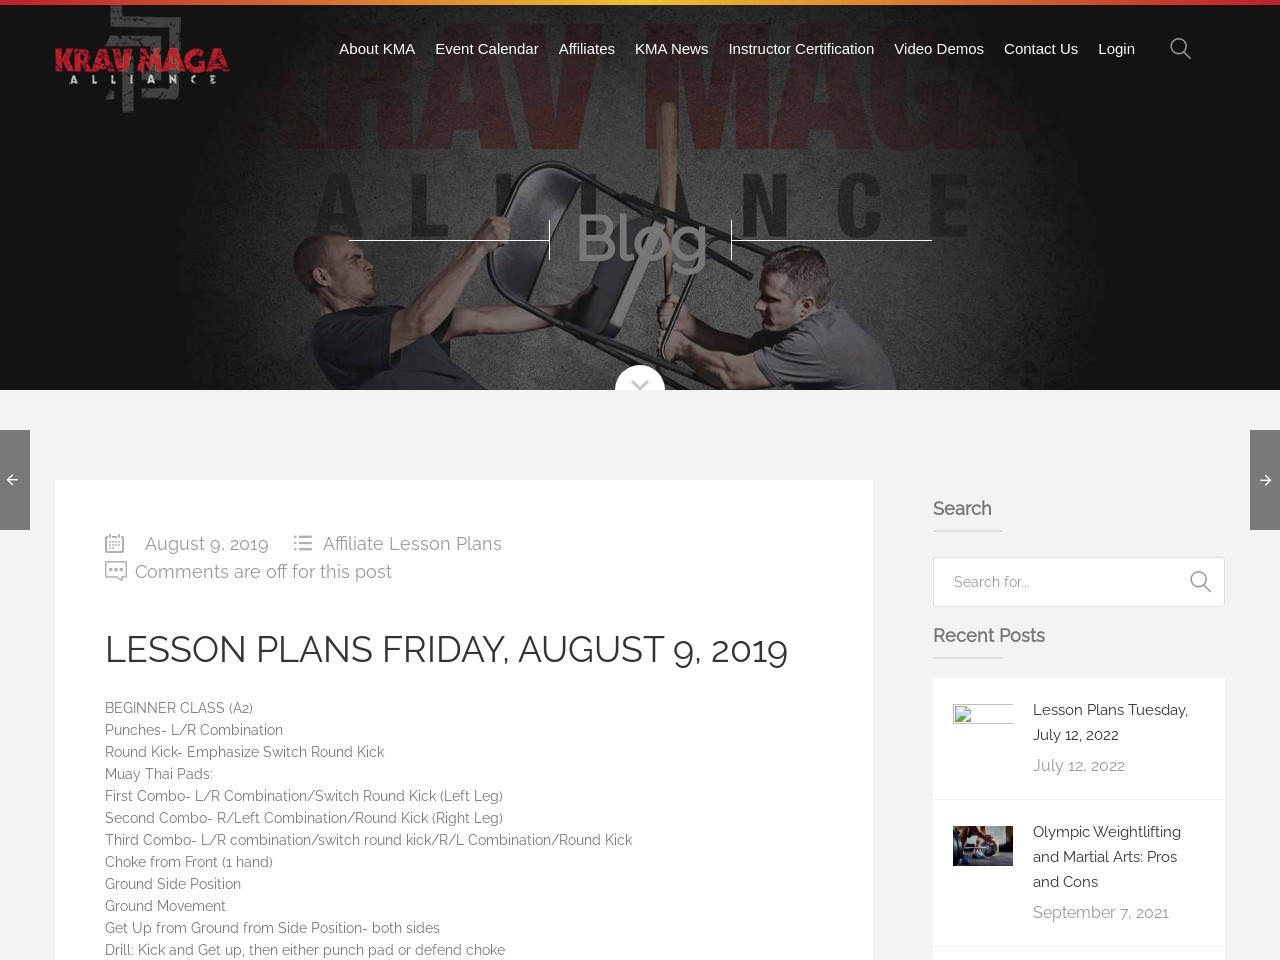 Lesson Plans Friday, August 9, 2019